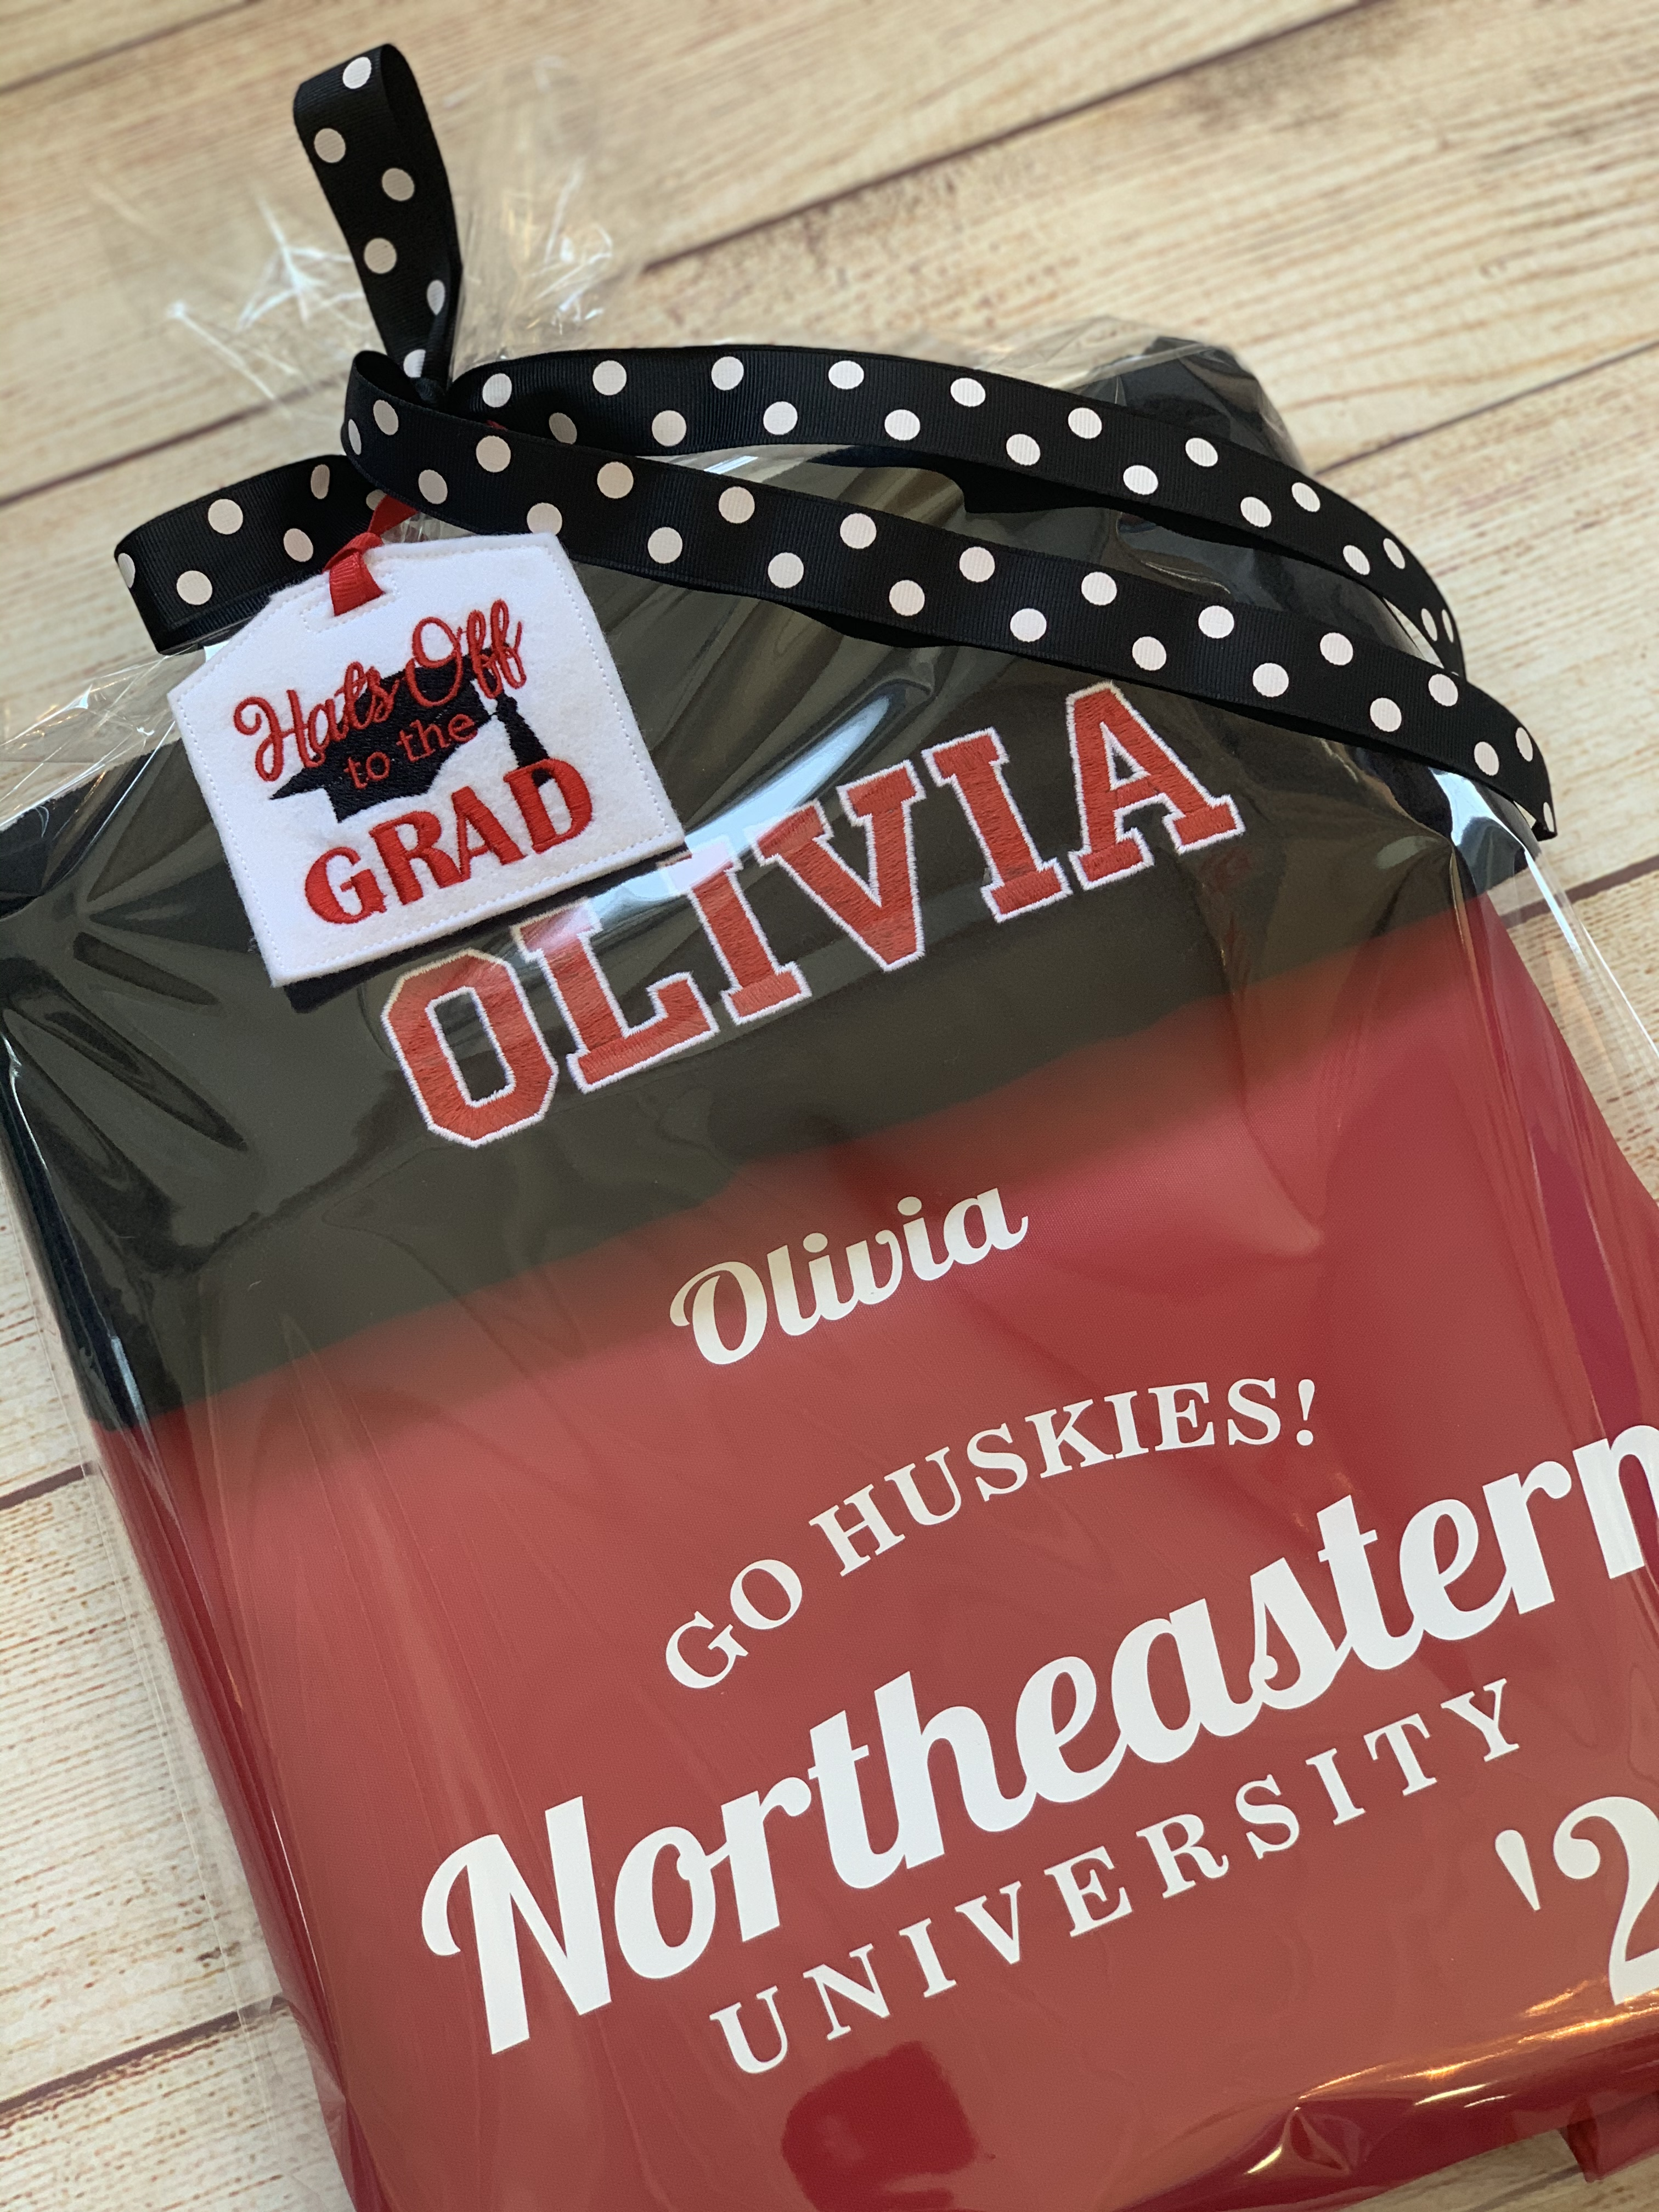 A Laundry Bag and Beach towel in the college colors makes the perfect gift for the graduate going off to college. By Wicked Stitches Gifts